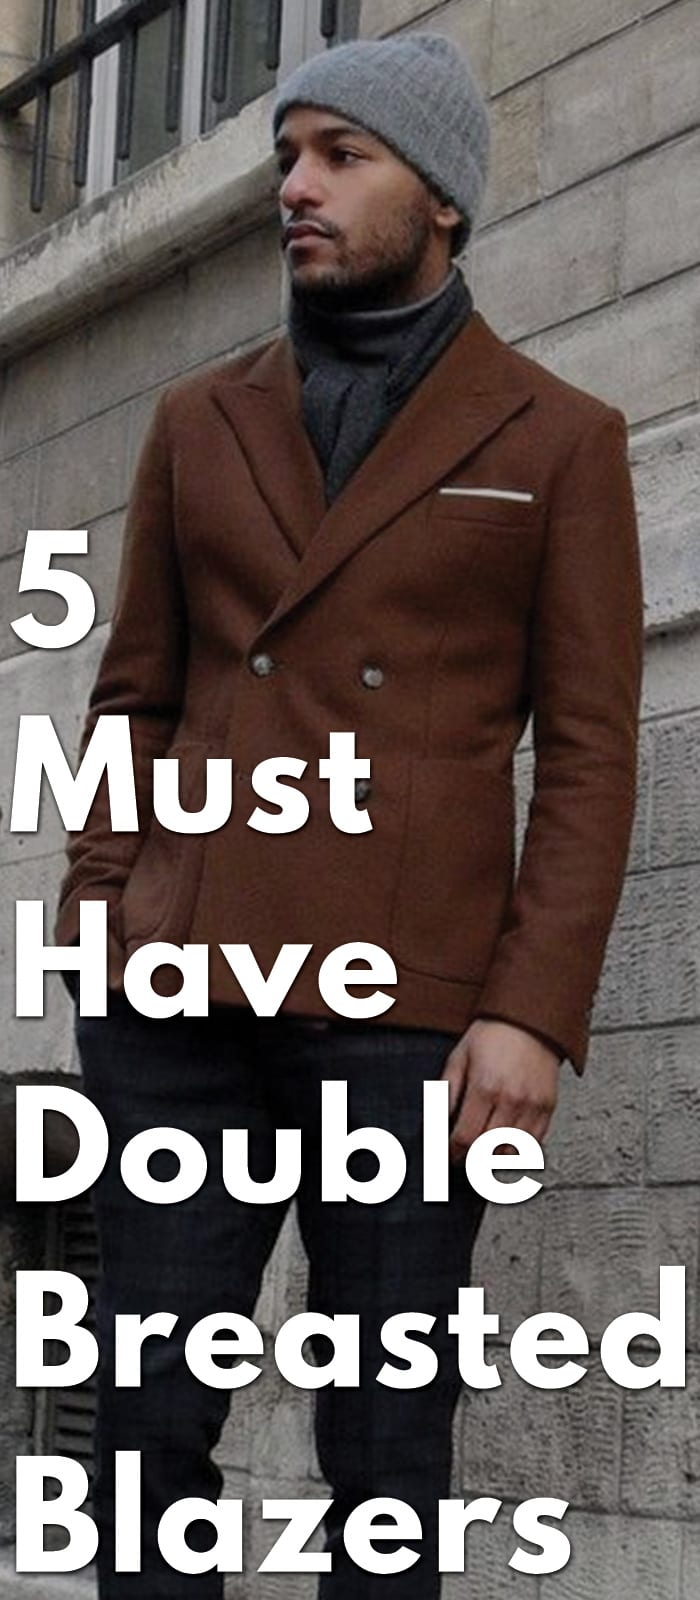 5-Must-Have-Double-Breasted-Blazers